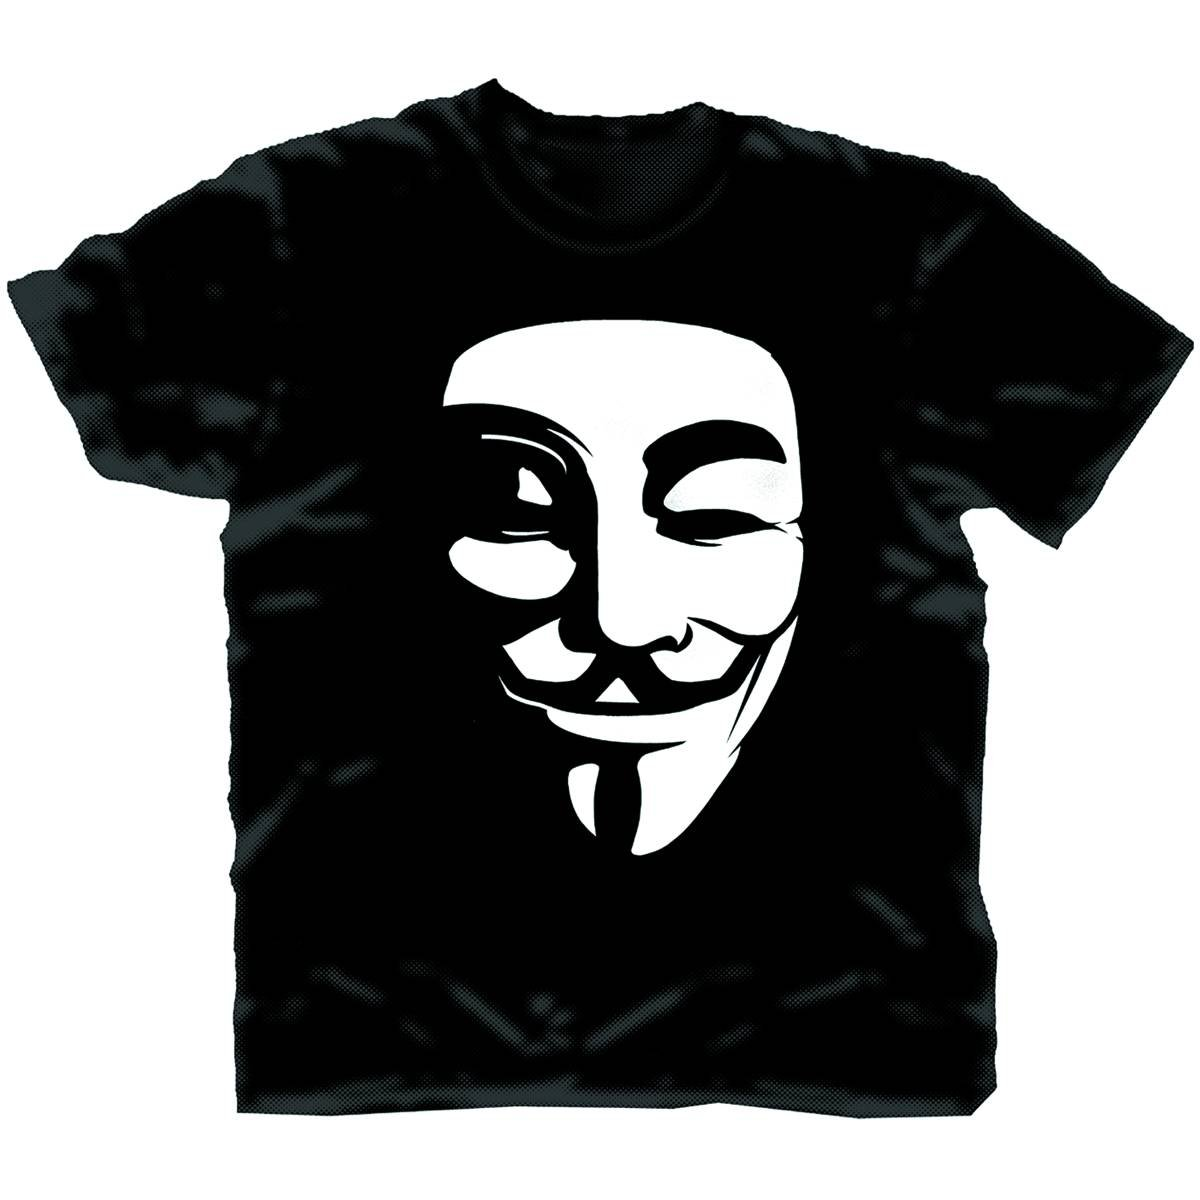 V FOR VENDETTA VENDETTA WHITE MASK BLK T/S XL (C: 1-1-0)